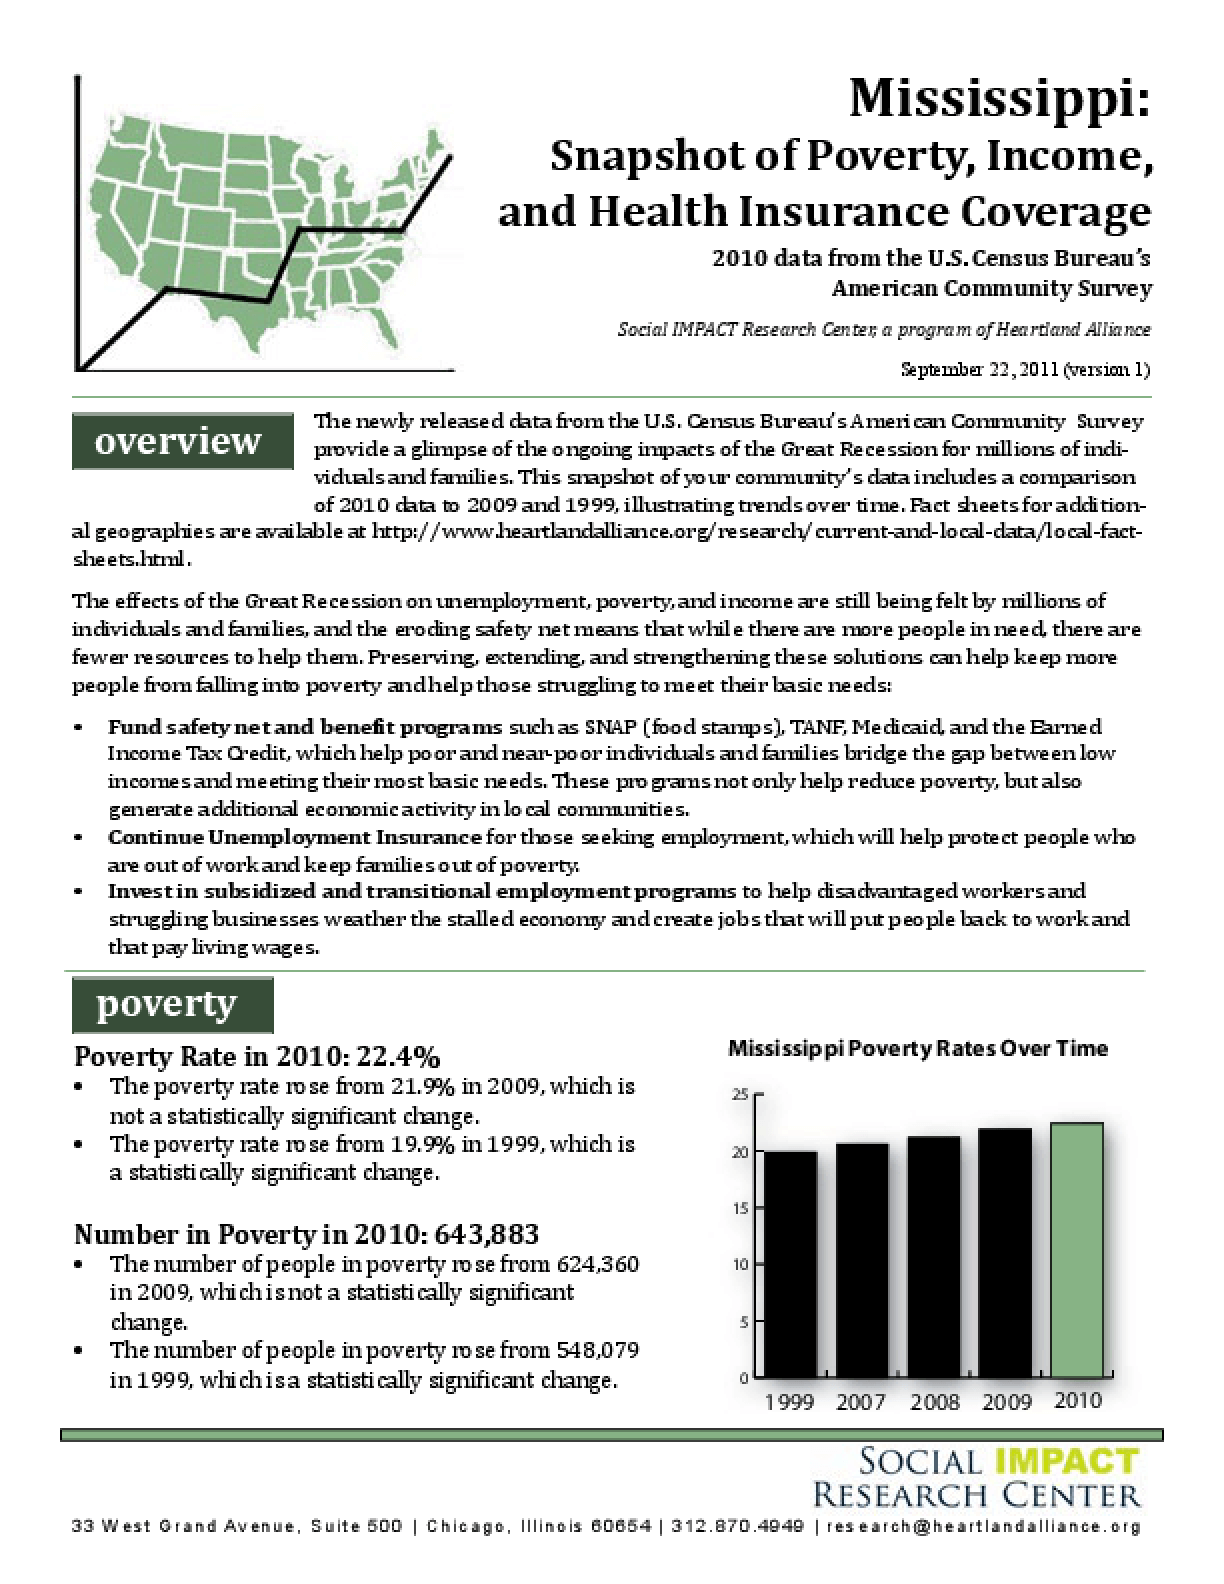 Mississippi: Snapshot of Poverty, Income, and Health Insurance Coverage